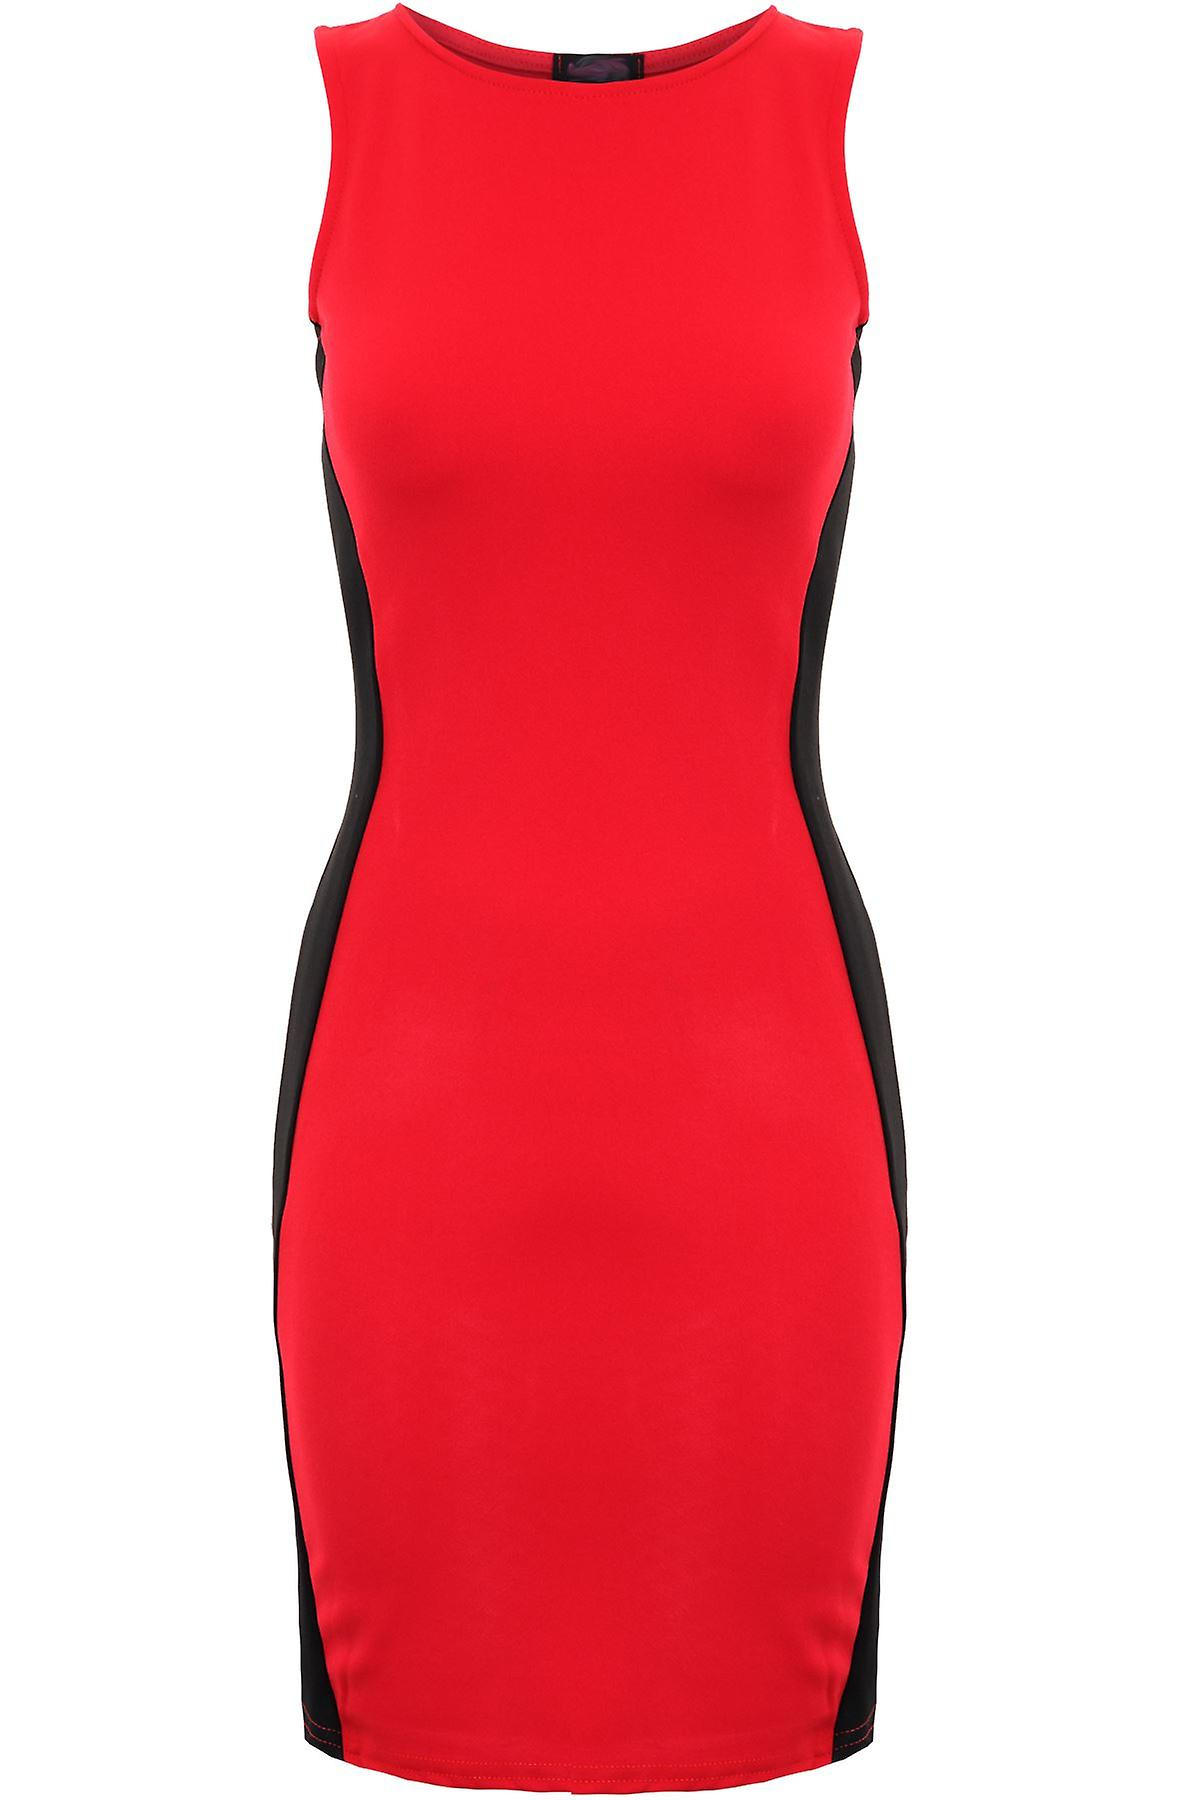 Ladies Celeb Bodycon Party Contrast Optical Illusion Slim Towie Women's Dress